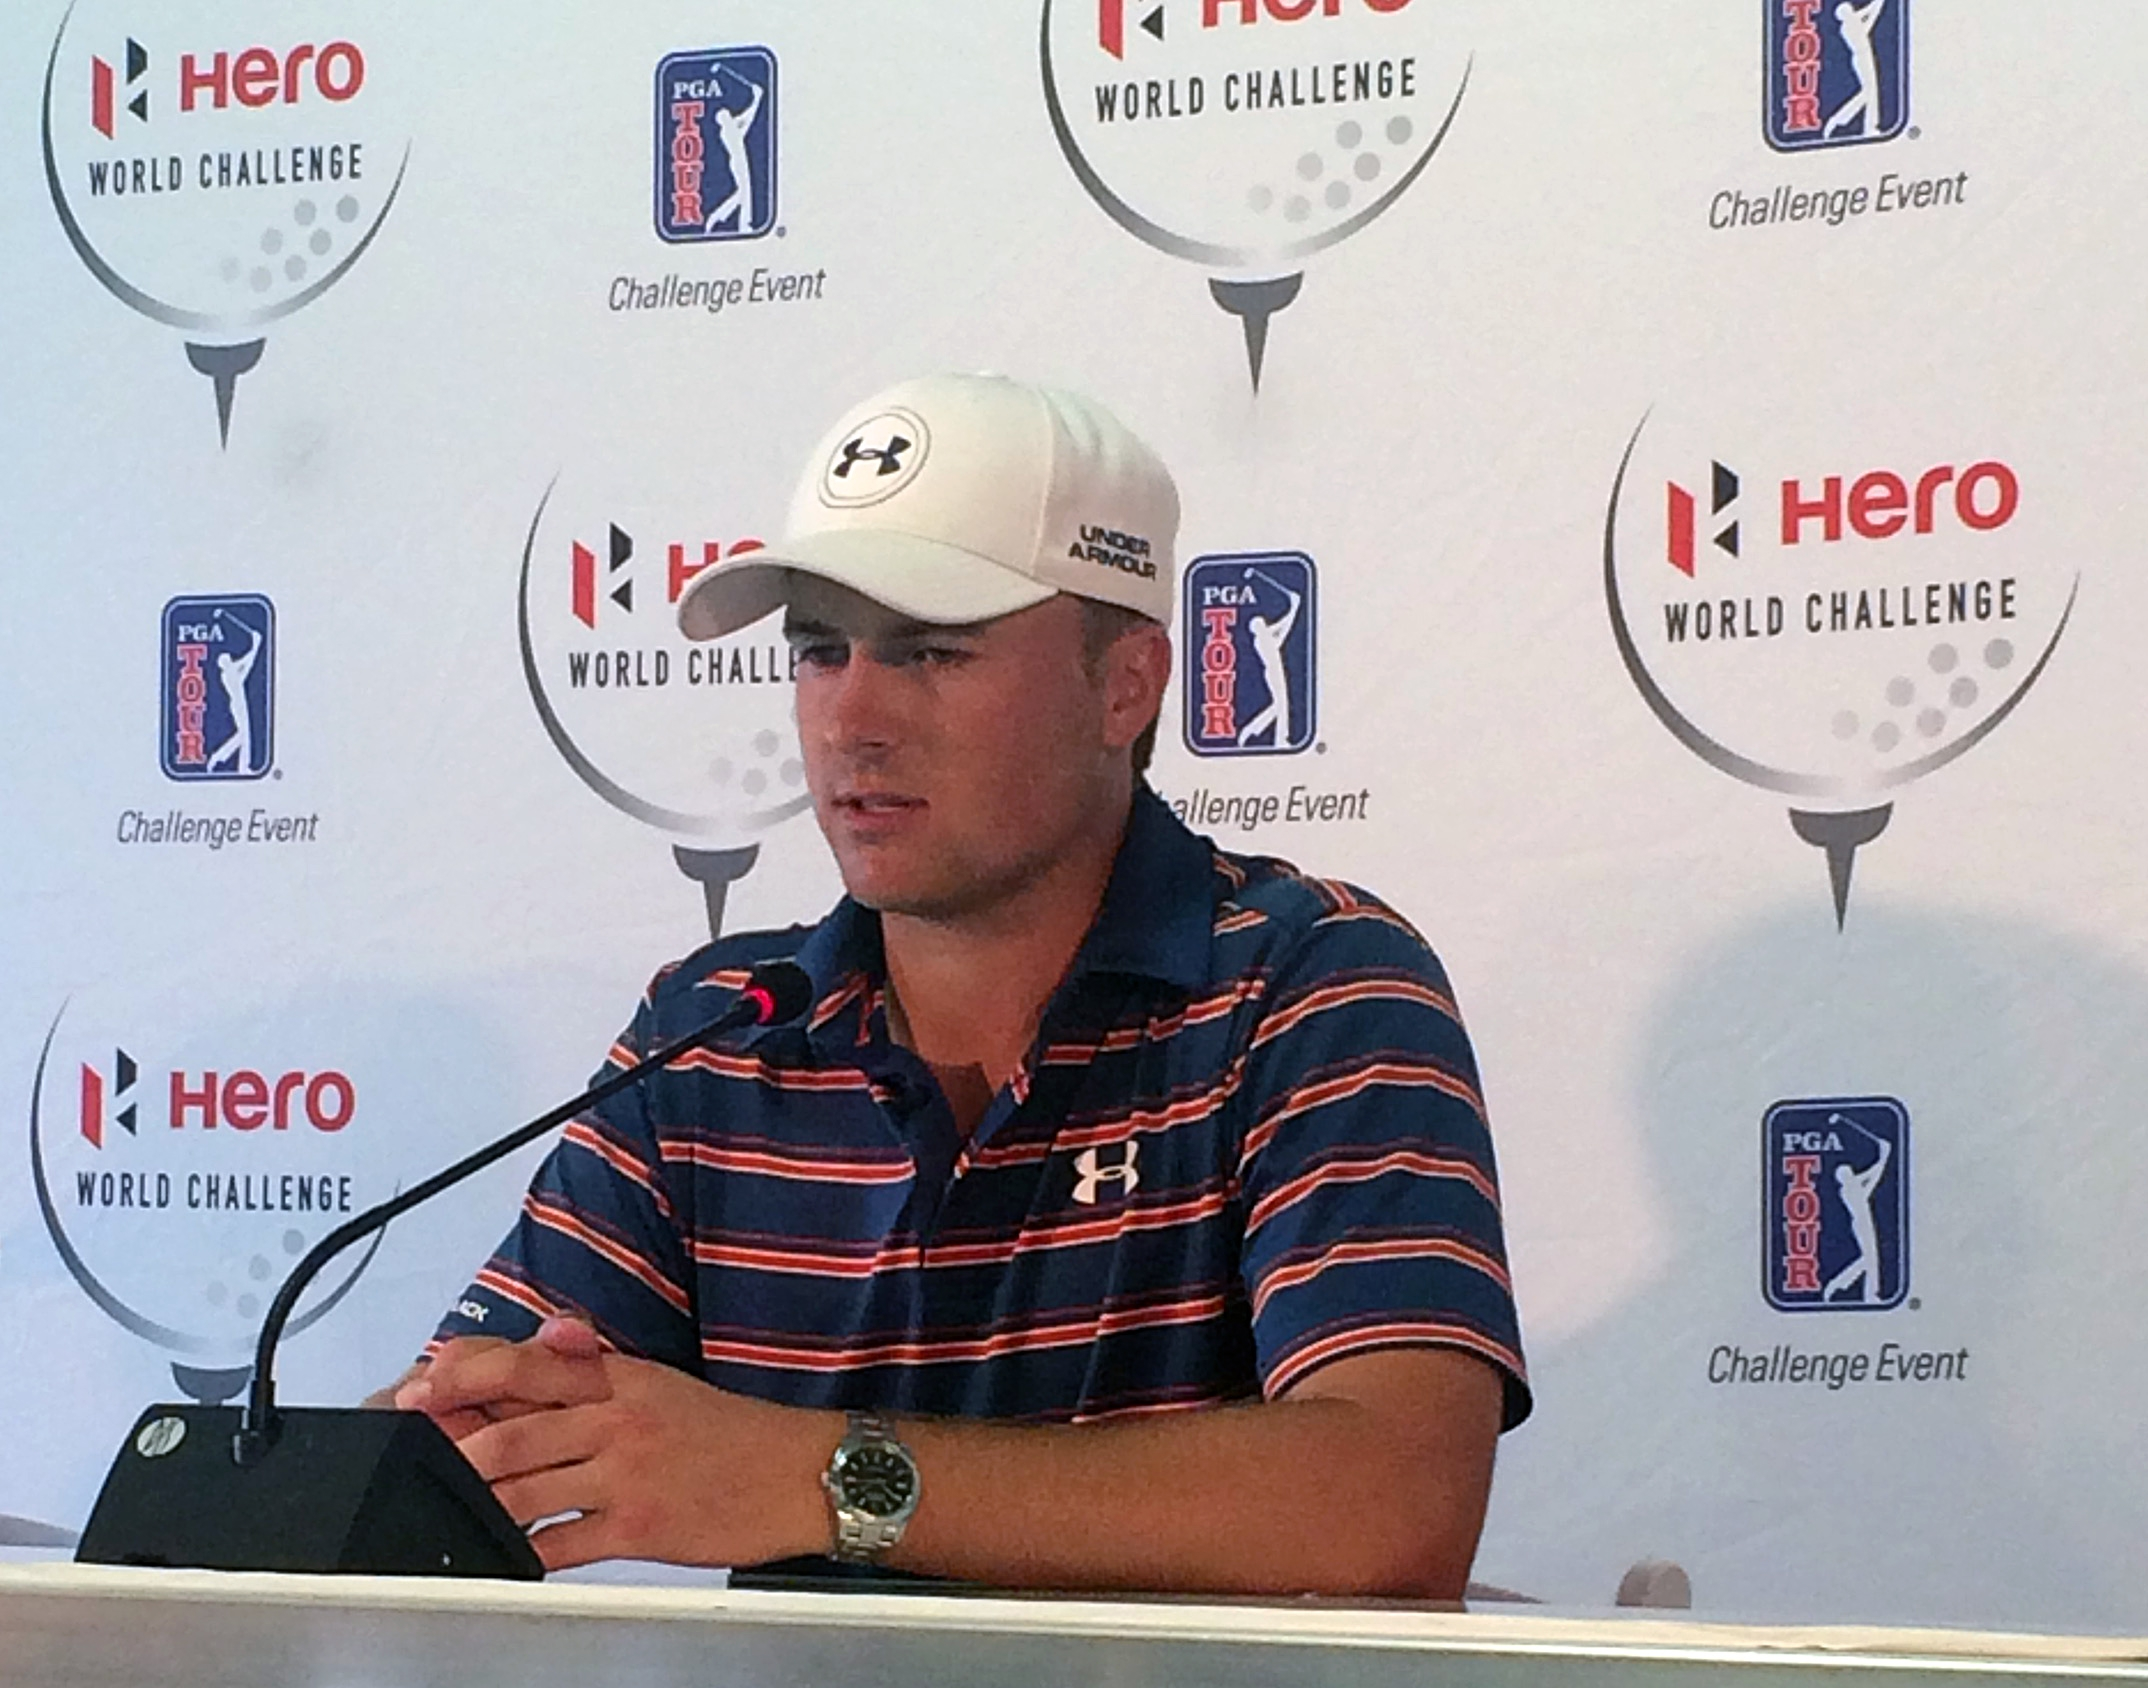 Jordan Spieth speaks during a press conference at the PGA Tour's Hero World Challenge golf tournament in Albany, Bahamas, Wednesday, Dec. 2, 2015. (AP Photo/Doug